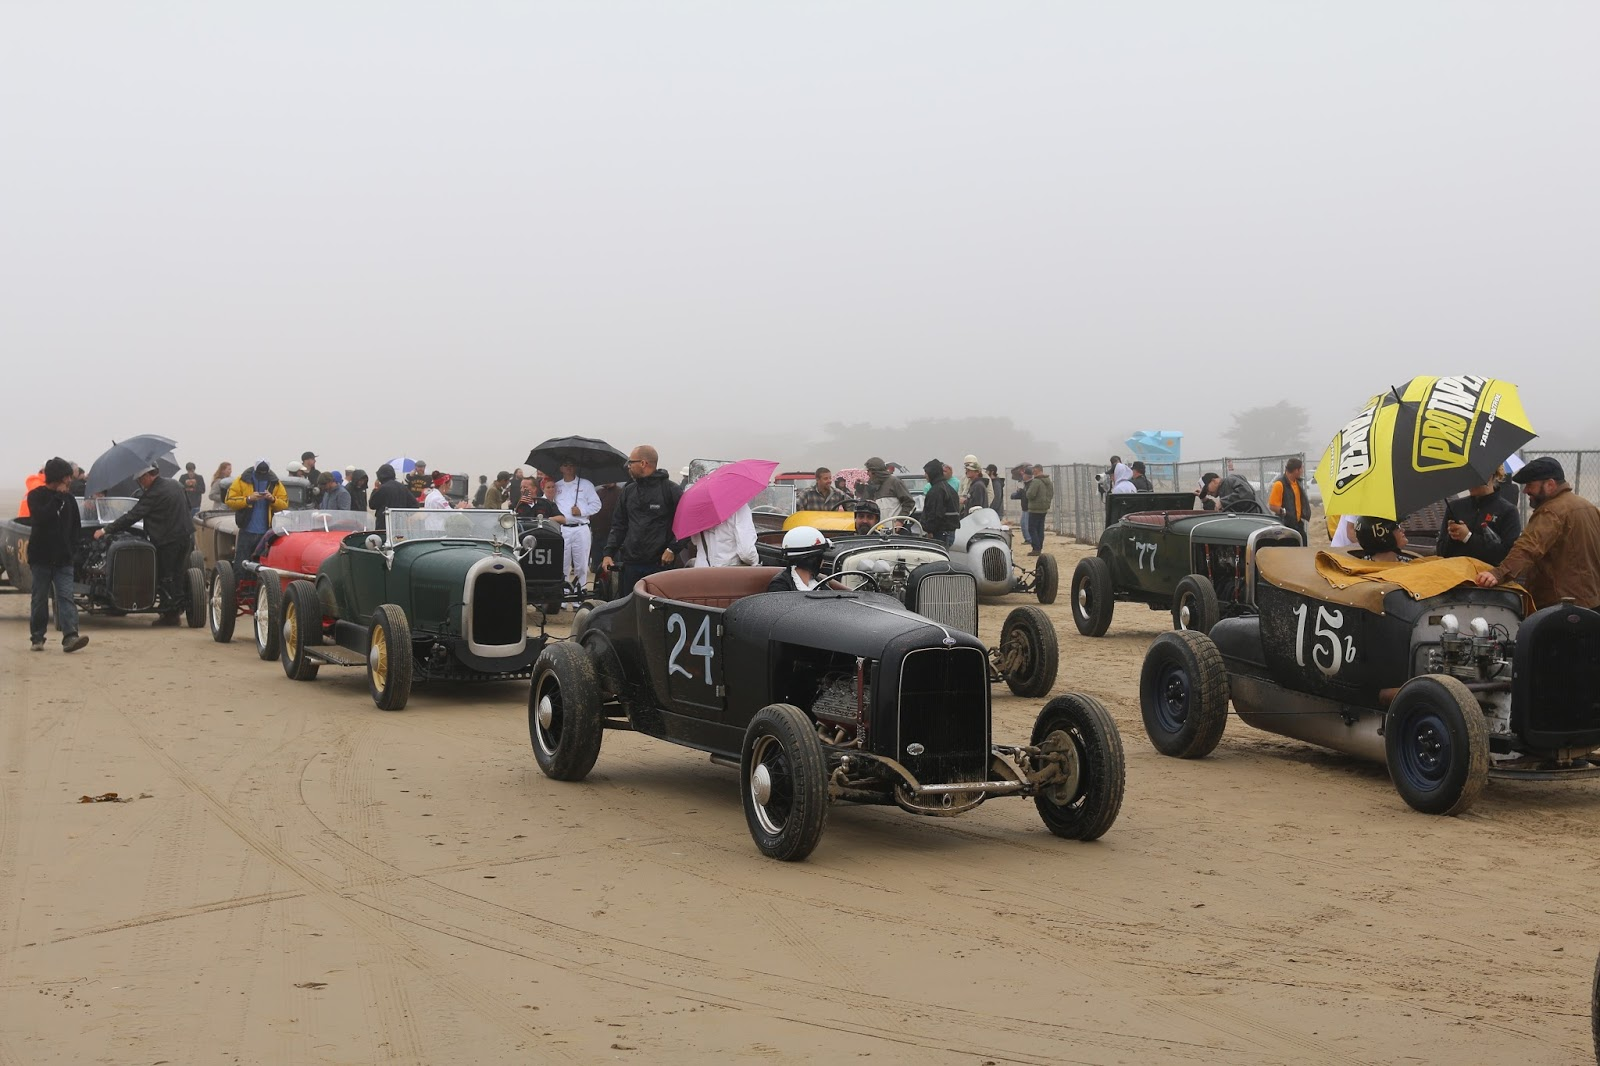 Covering Classic Cars : The Race of Gentlemen West in Grover Beach ...